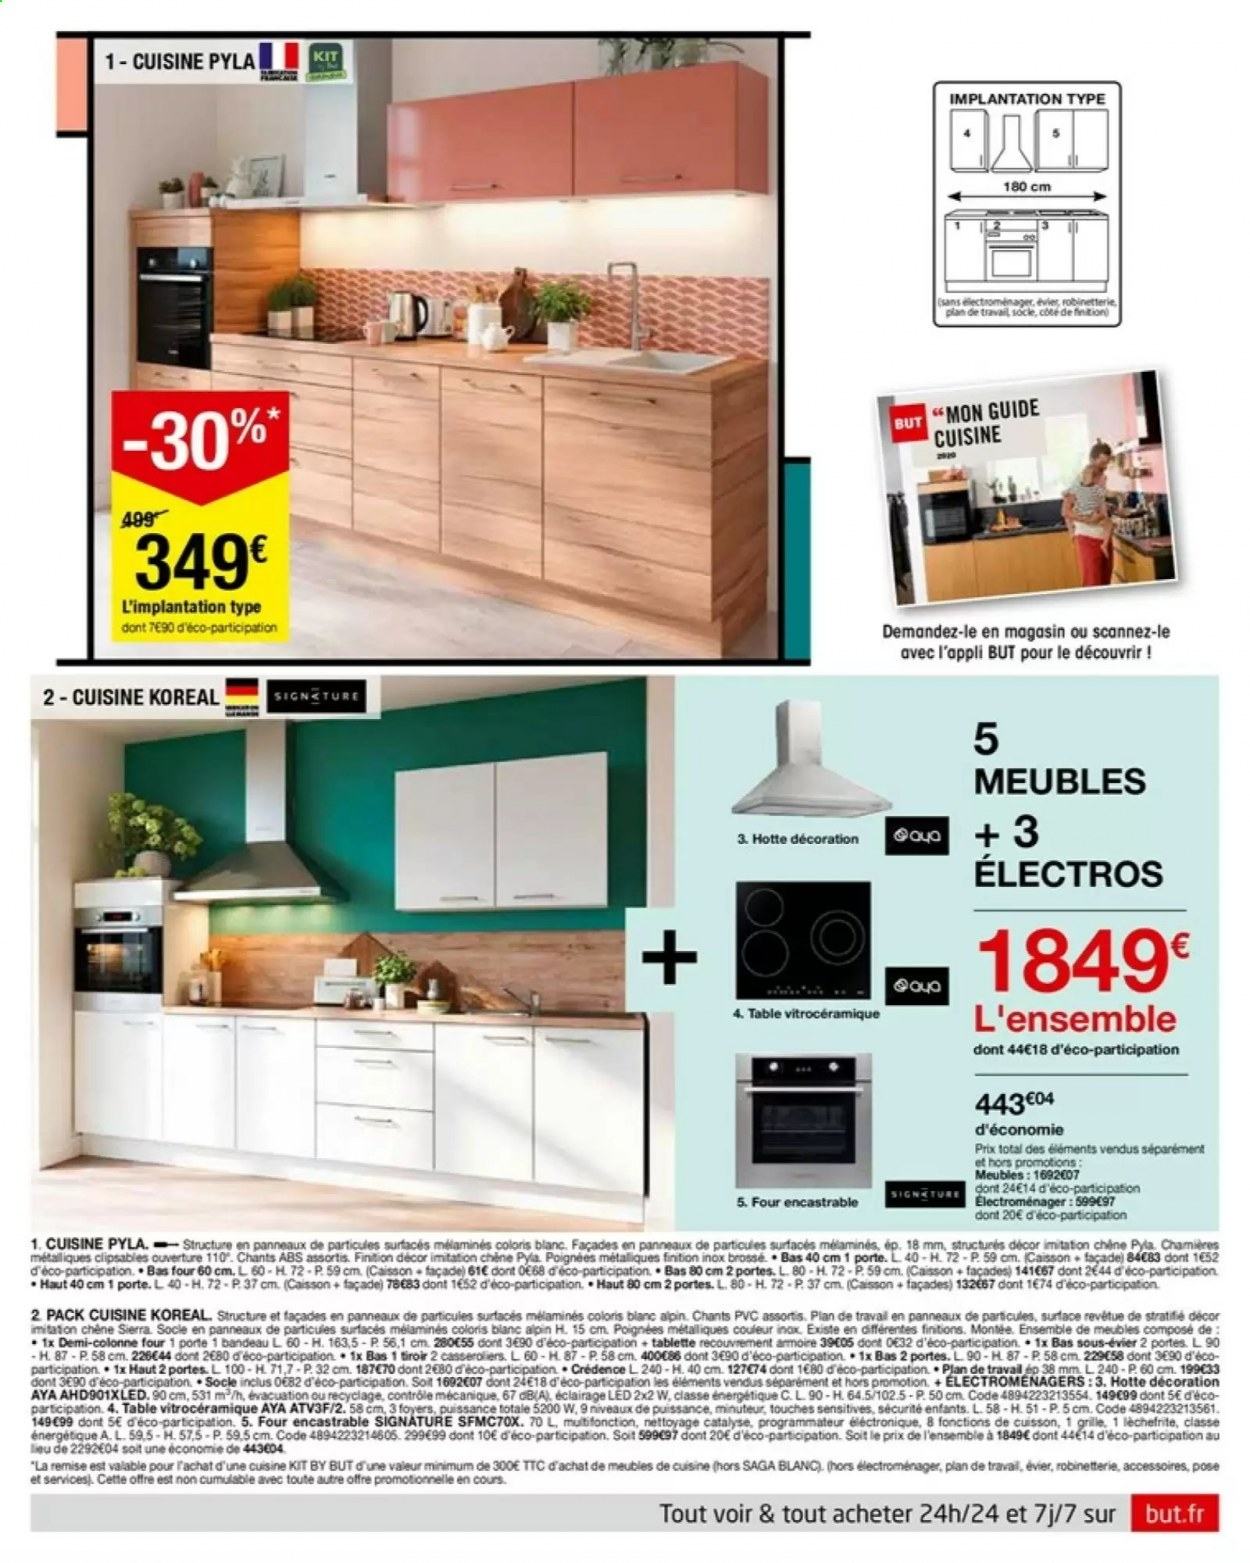 Catalogue BUT 13.13.13 - 13.13.13 - page 13  Vos Promos